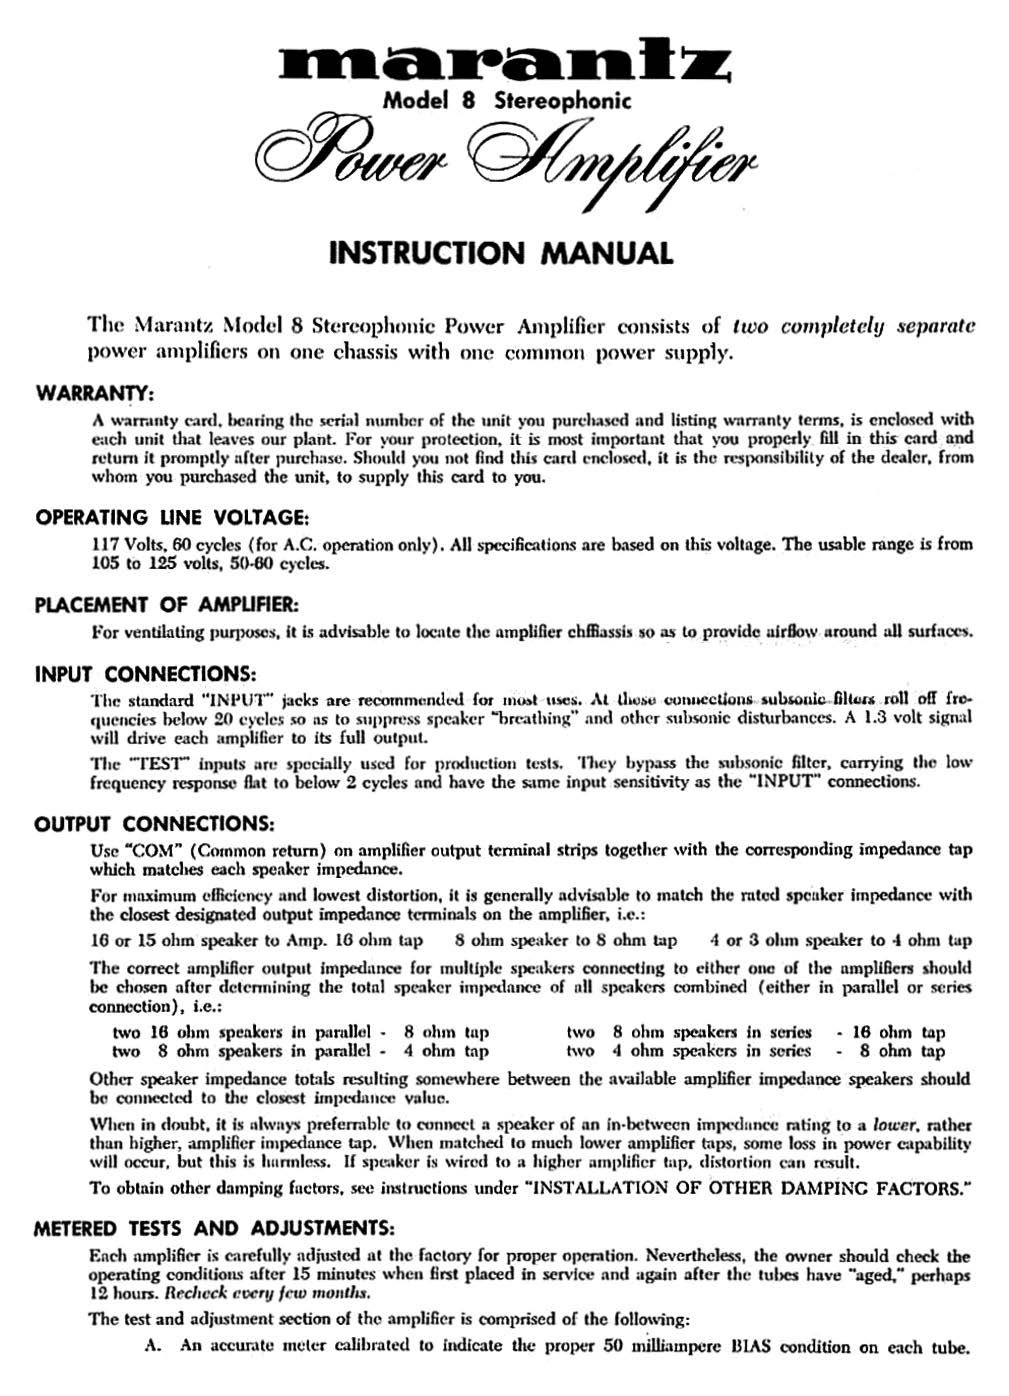 Marantz model 8 owners manual and more and 50 similar items marantz model 8 owners manual and more instant download fandeluxe Image collections